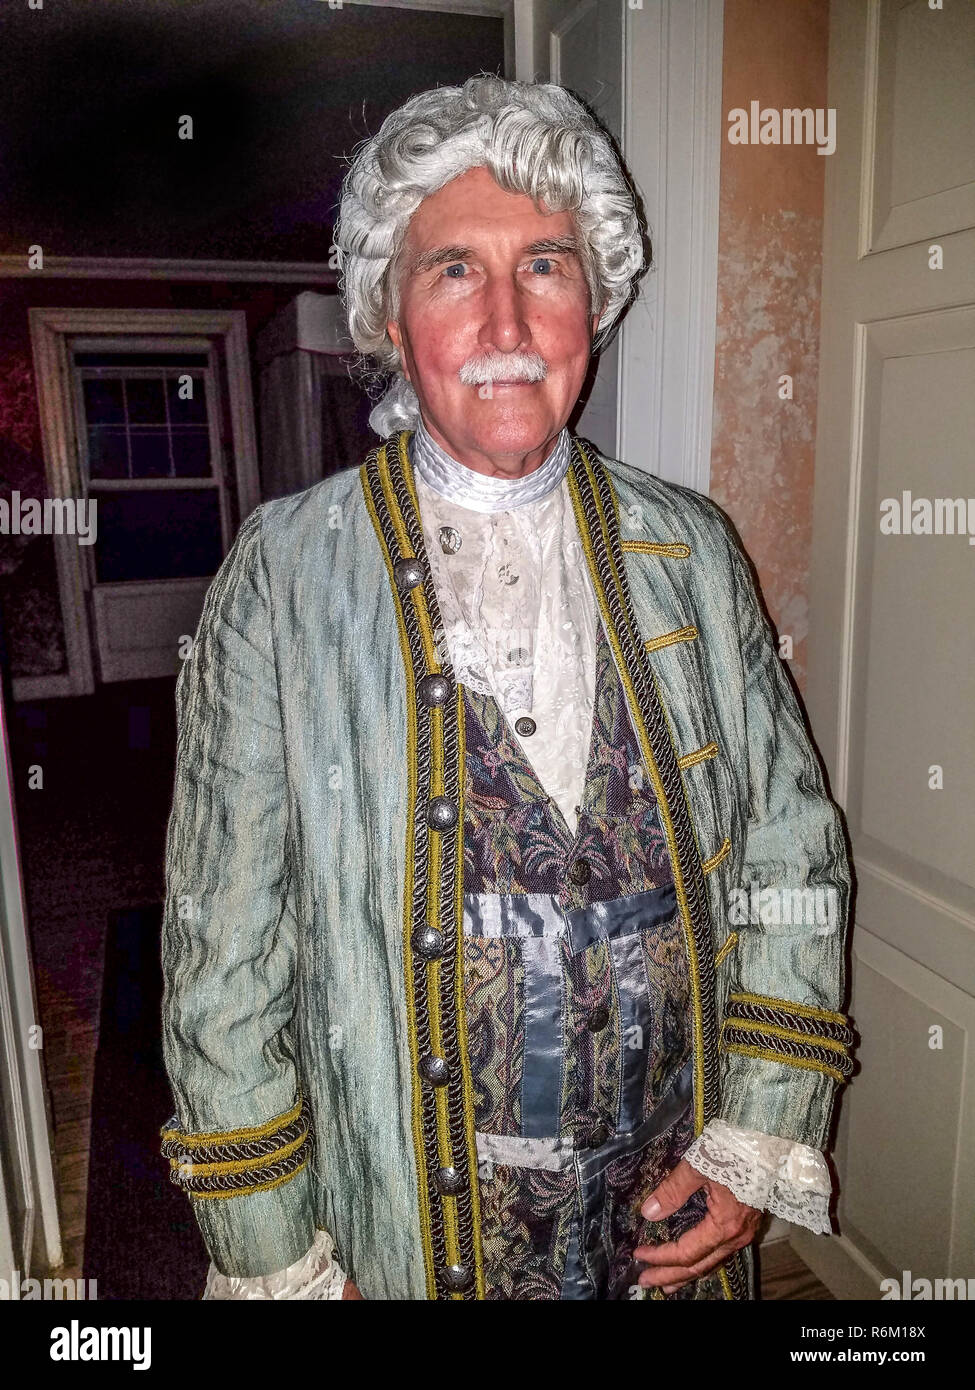 George Washington (aka Karl Watson, historian) playing the part of the lst US president for 'Dinner With George' presentation in Bridgetown, Barbados. - Stock Image